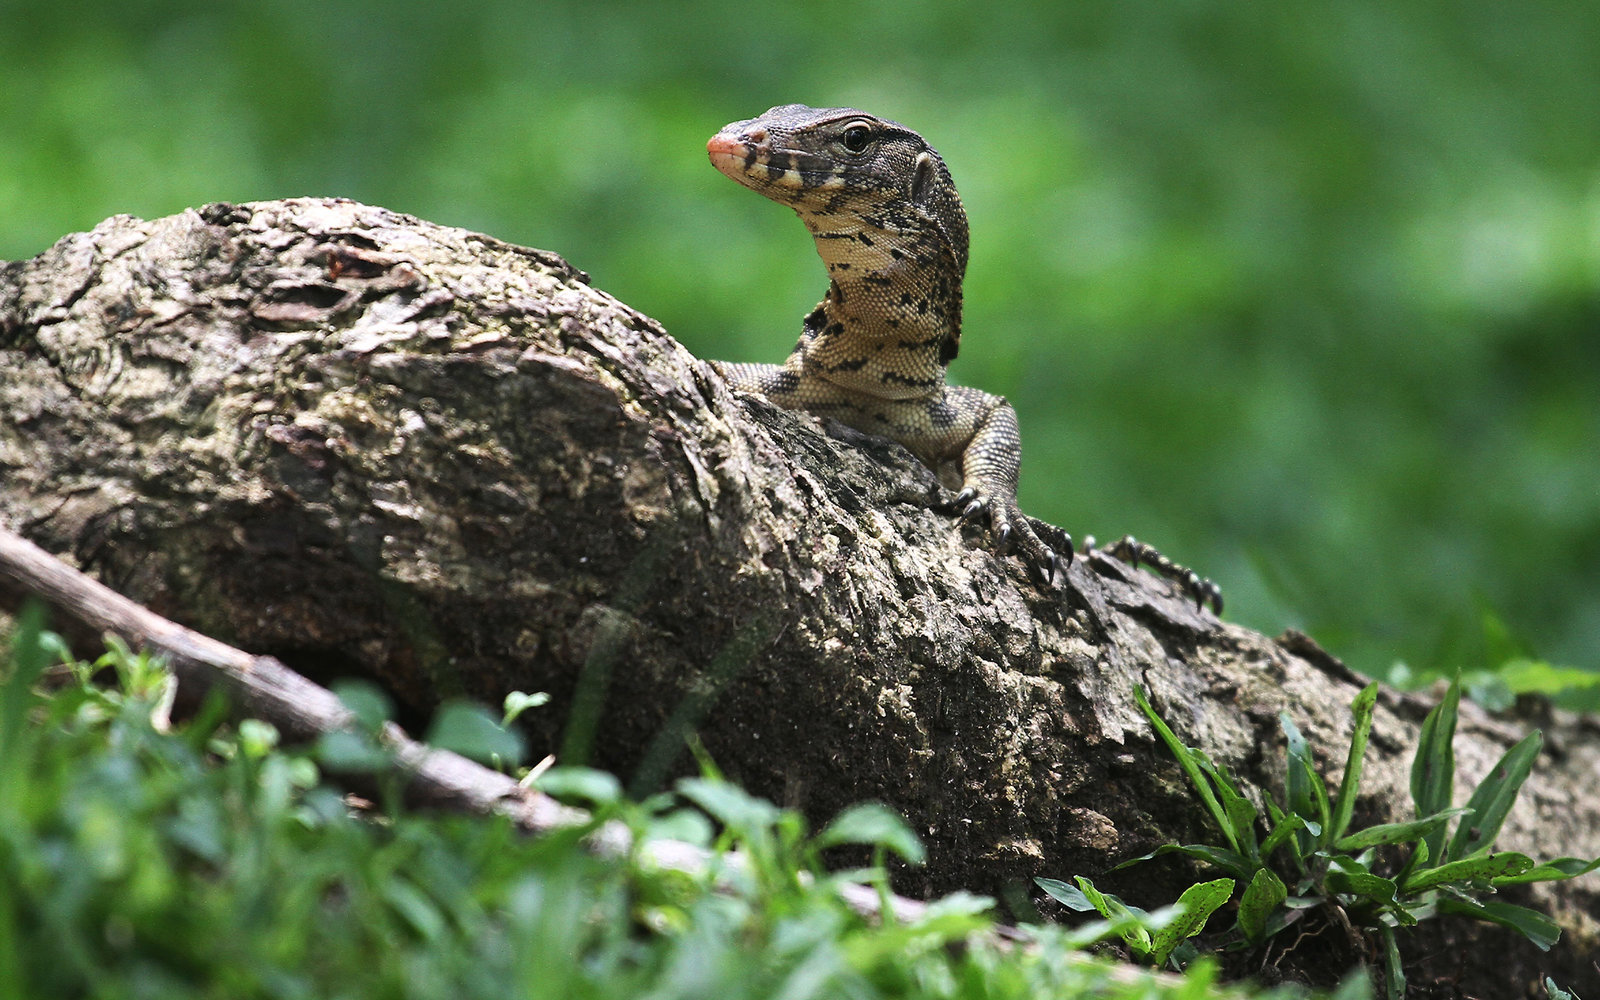 Giant Monitor Lizards Are Out of Control in This Bangkok Park